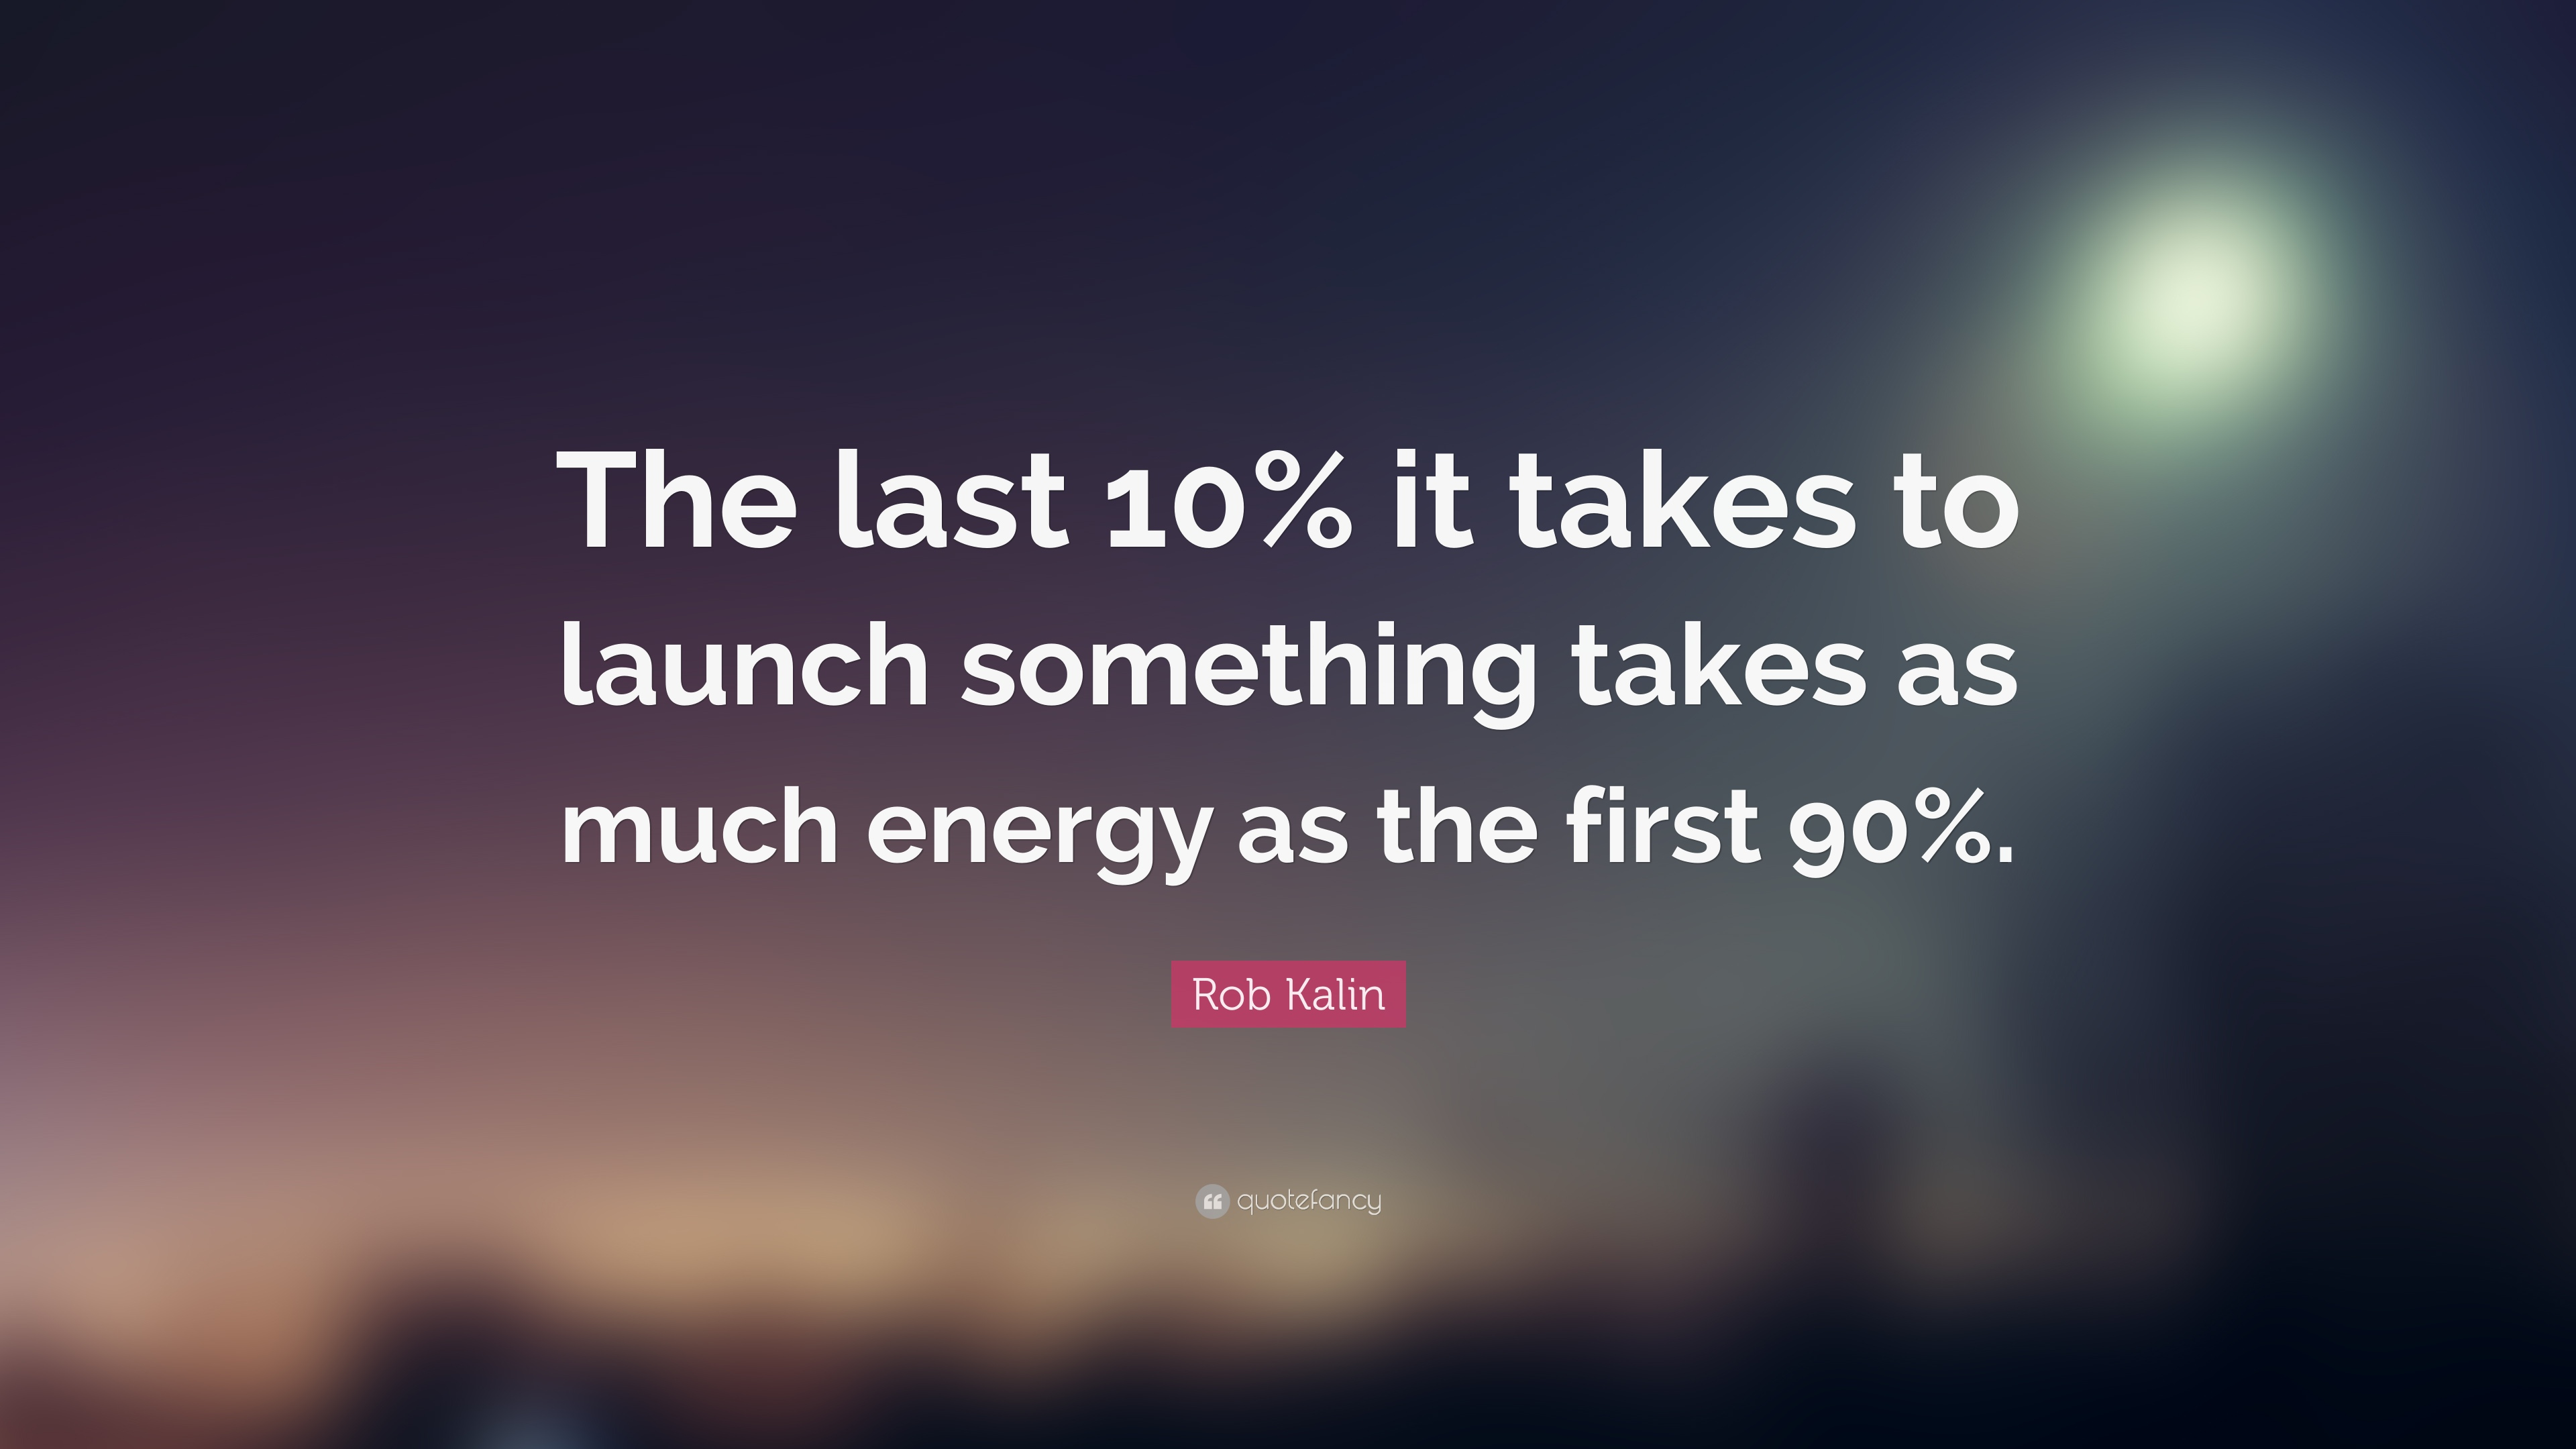 Gary Vaynerchuk Quotes Wallpaper Rob Kalin Quote The Last 10 It Takes To Launch